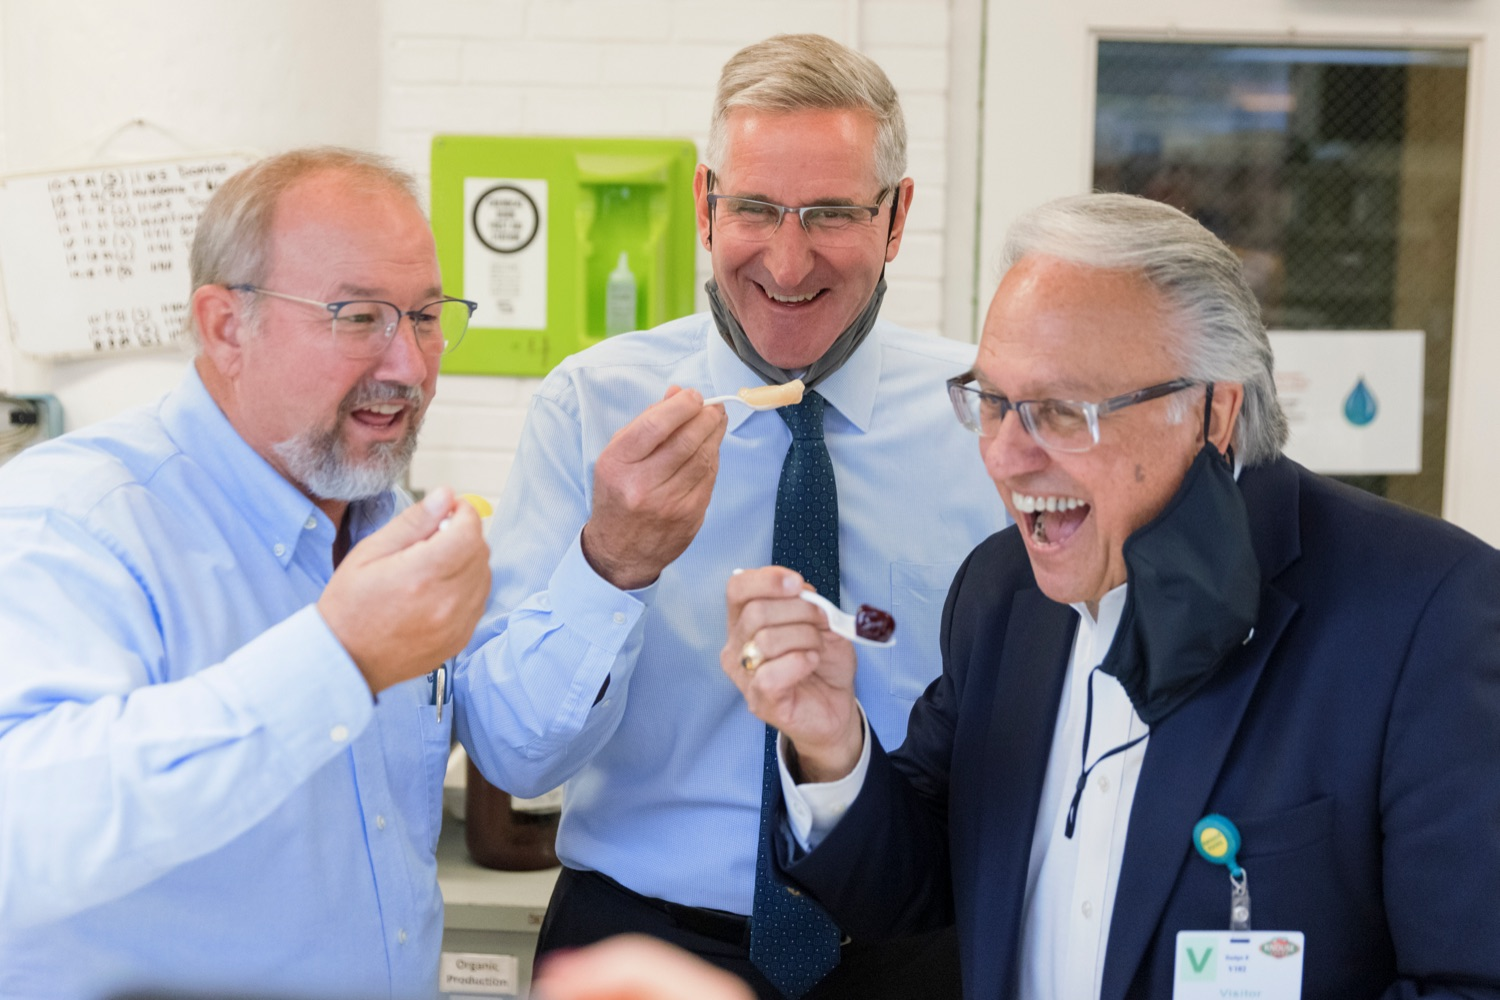 """<a href=""""https://filesource.wostreaming.net/commonwealthofpa/photo/20111_AGRIC_Food_Fuels_NK_011.JPG"""" target=""""_blank"""">⇣Download Photo<br></a>Agriculture Secretary Russell Redding, center, taste tests fruit with representatives Dan Moul, left, and Eddie Day Pashinski, right, during a press conference, which highlighted Pennsylvanias agriculture and food manufacturing industry at Knouse Foods, kicking off the Food that Fuels Pennsylvania tour, a plan to spotlight the commonwealths agriculture and food manufacturing industry and its workforce, on Wednesday, October 13, 2021."""